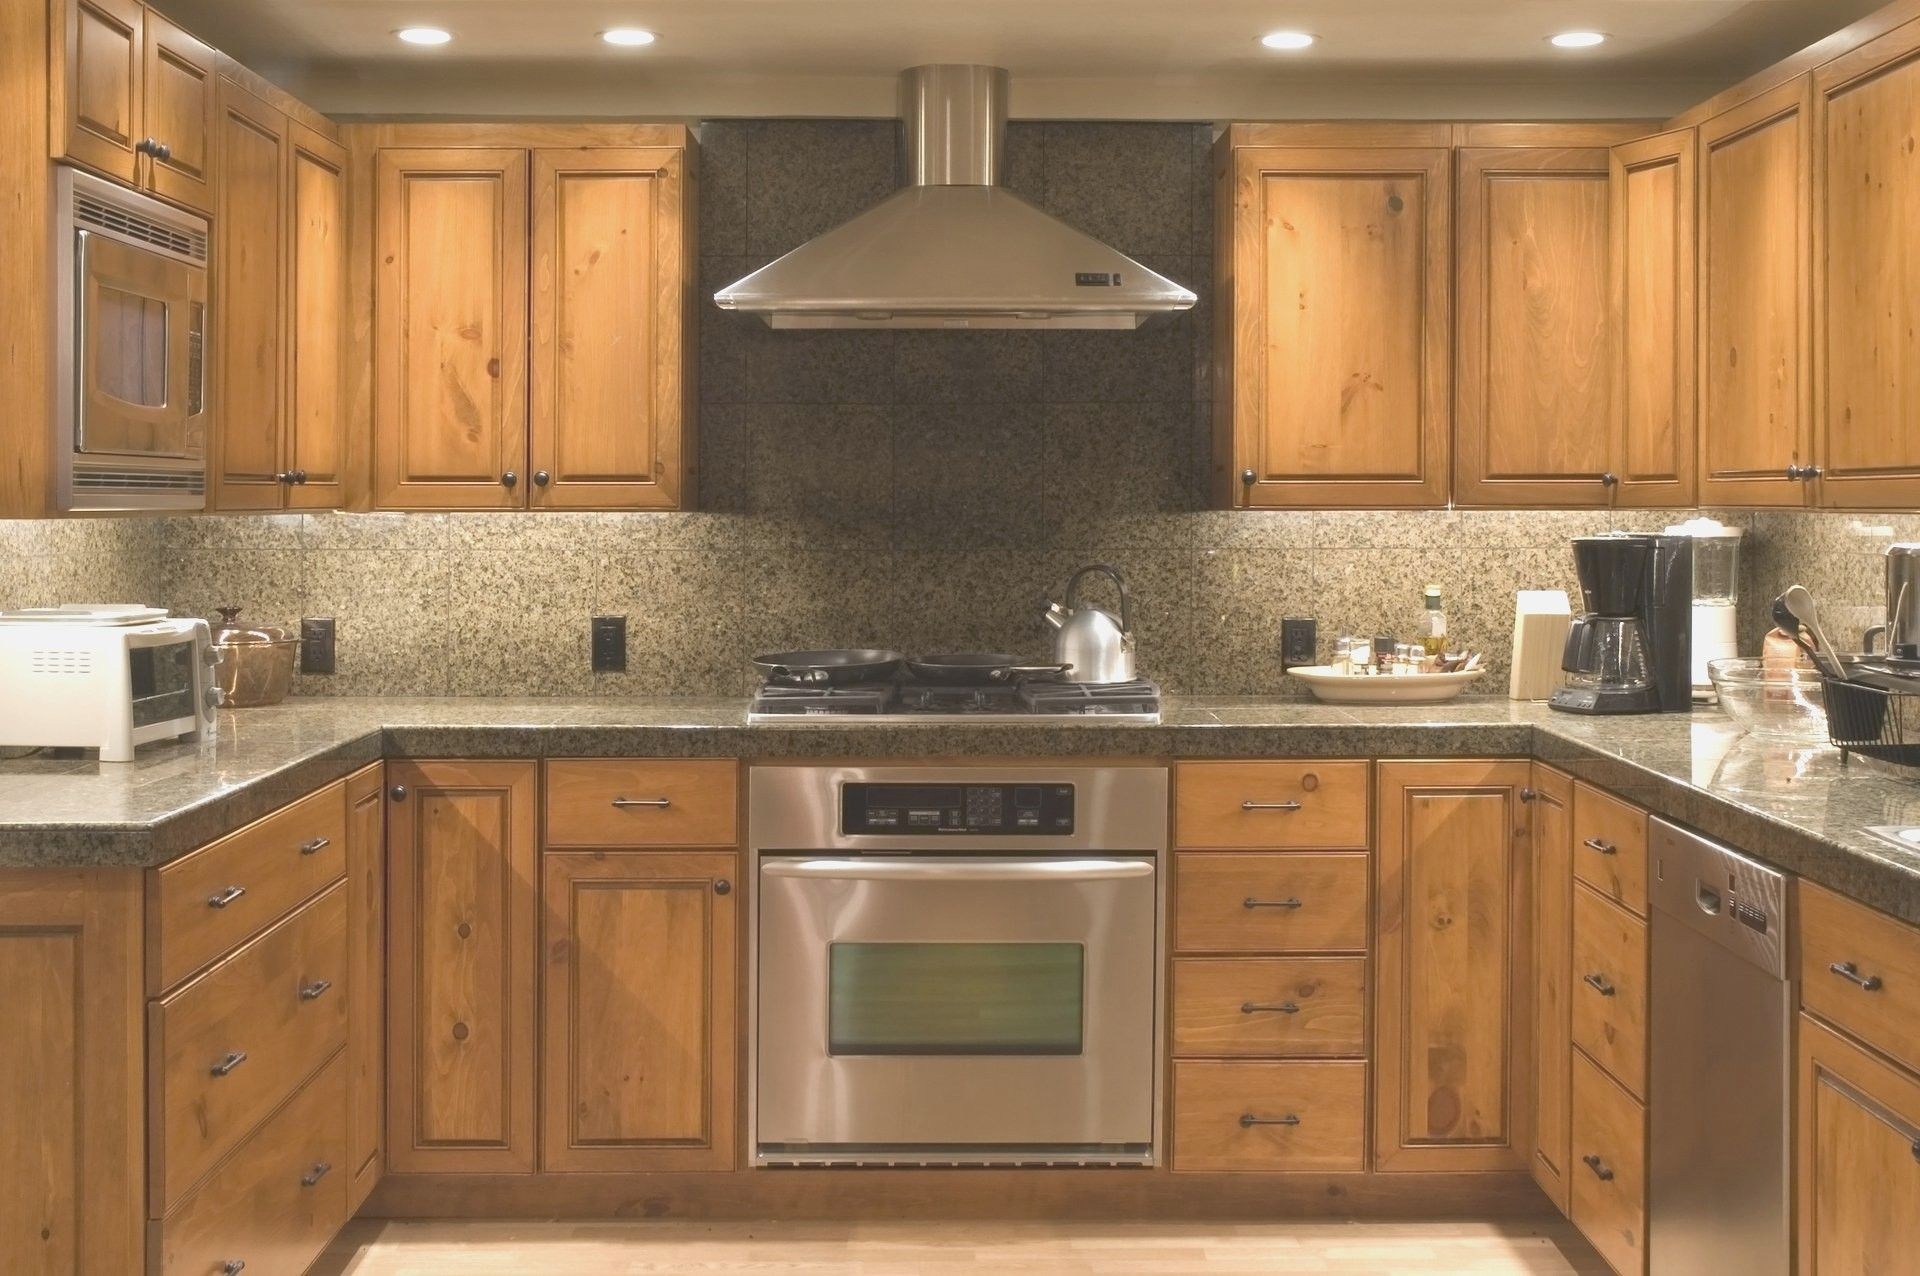 Make Your Own Kitchen Cabinets Build Your Own Frameless Kitchen